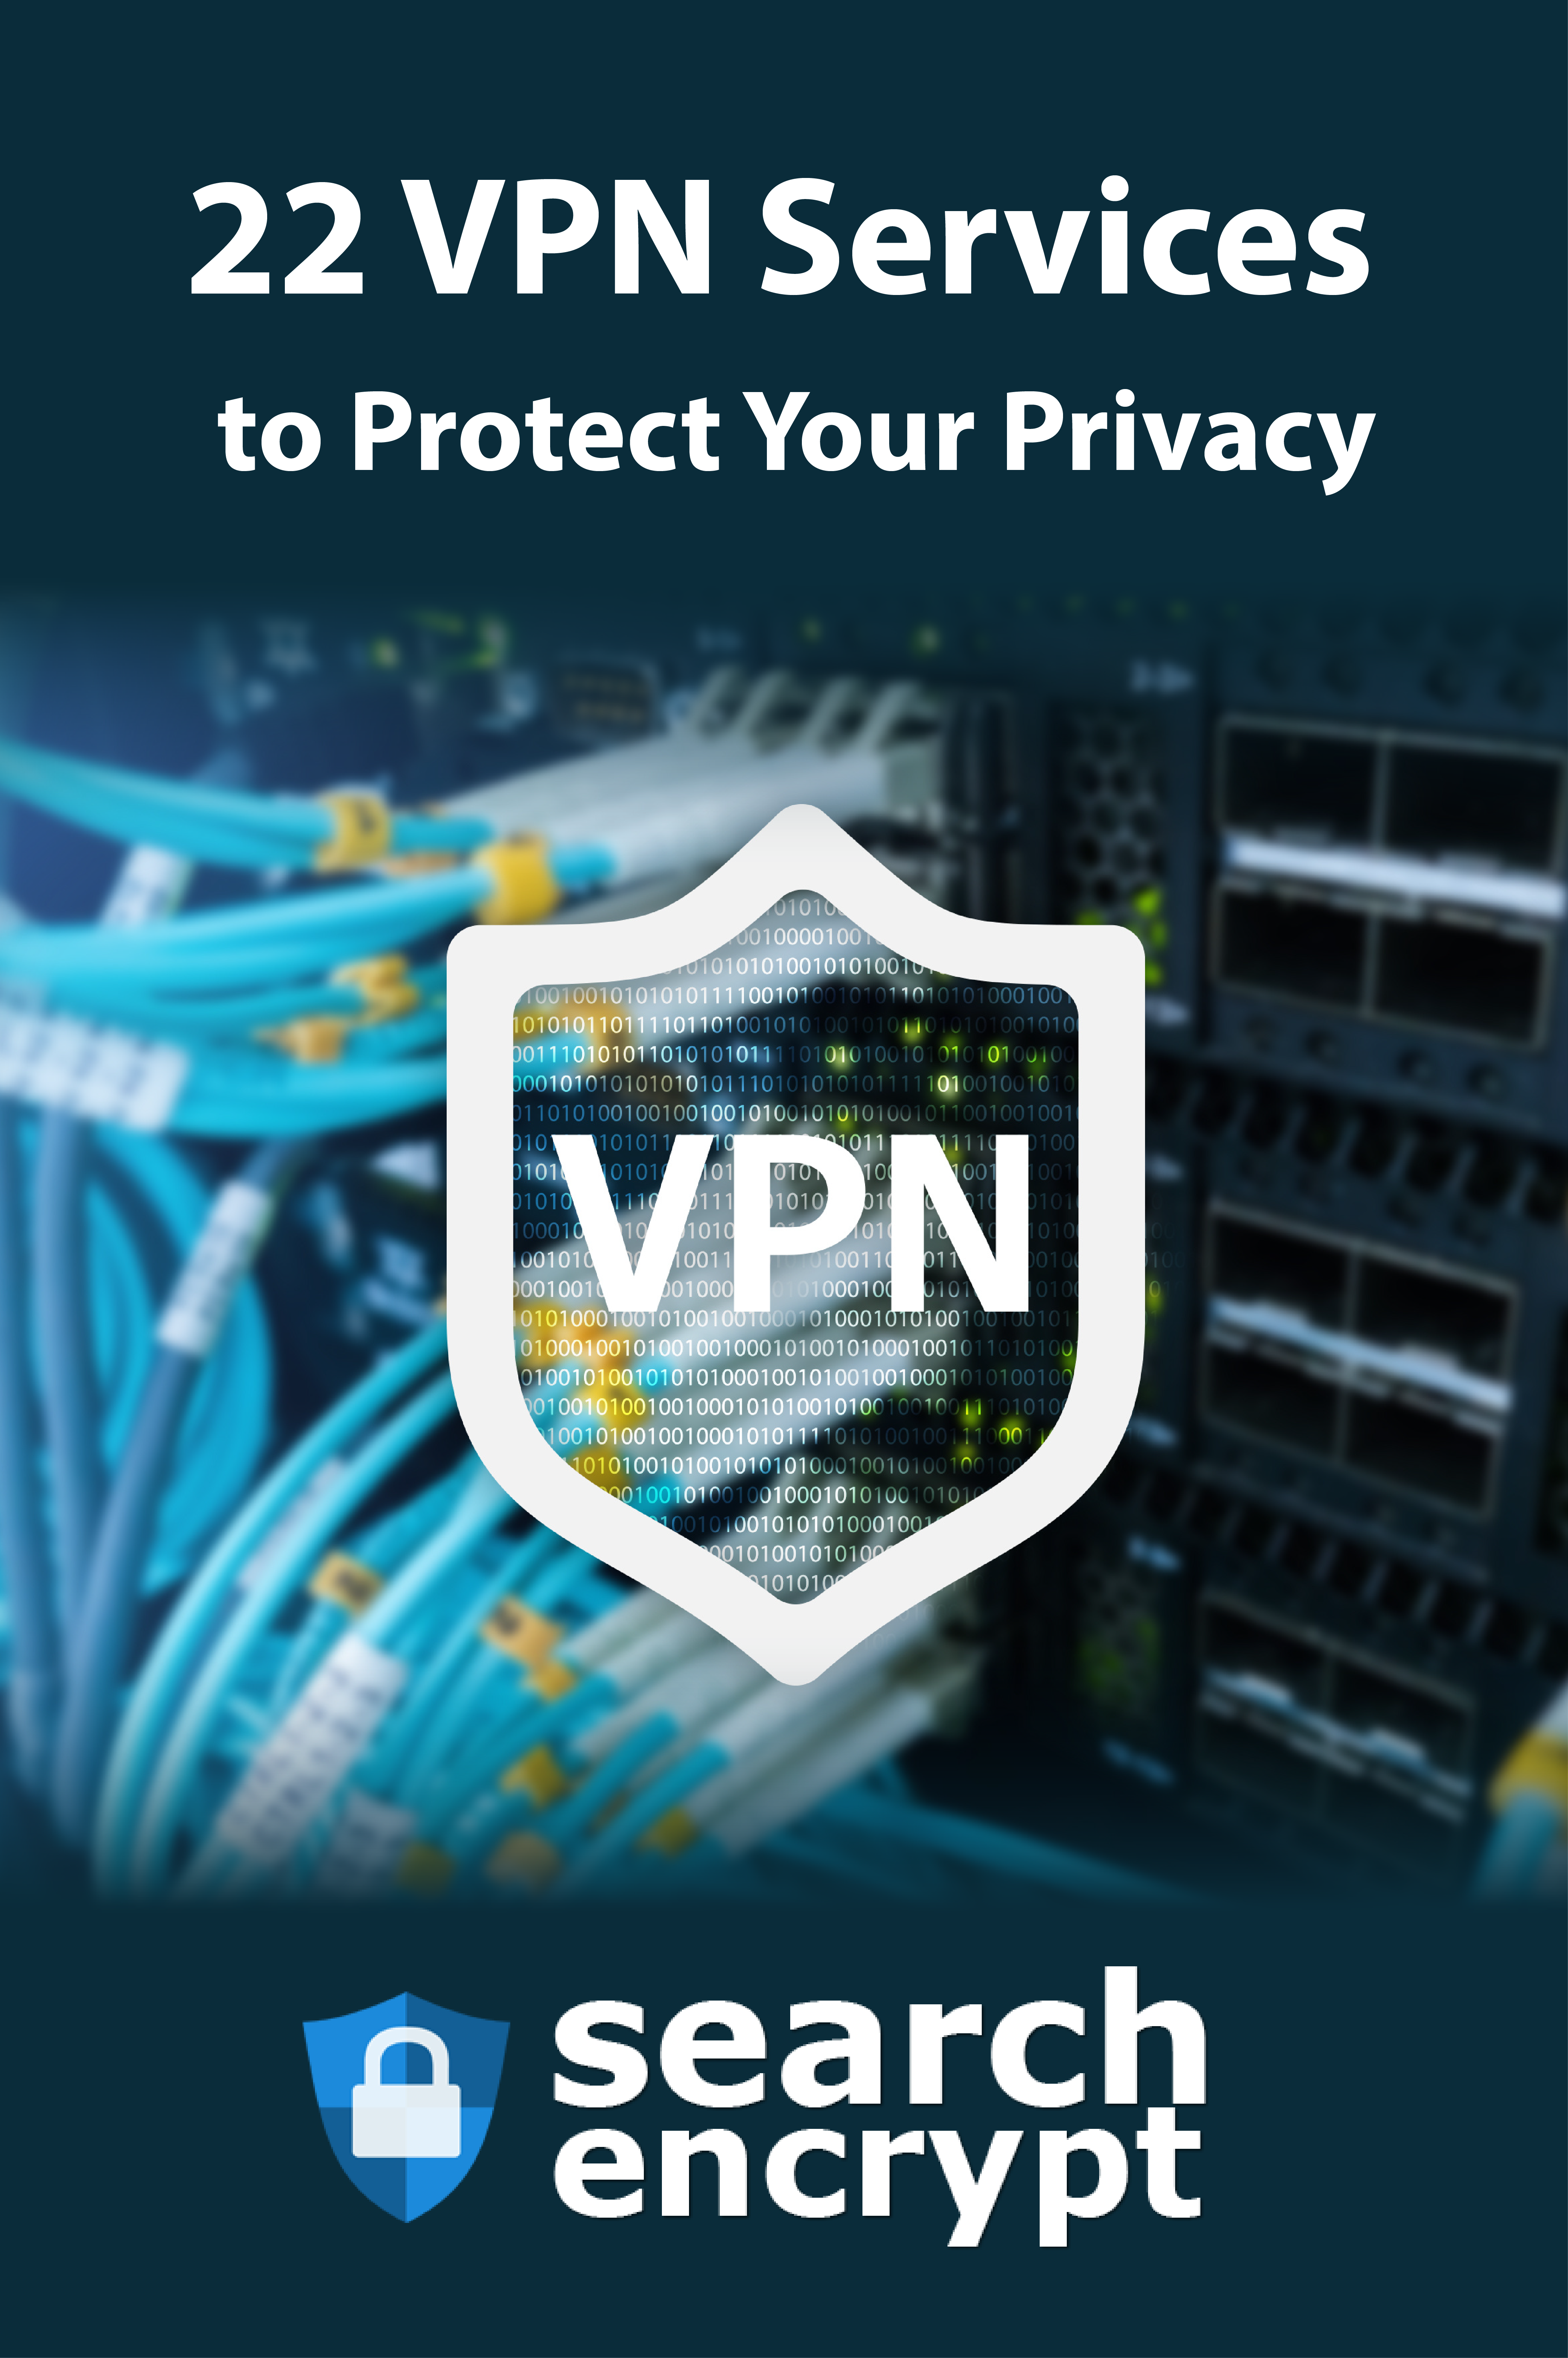 How Does A Vpn Protect Privacy